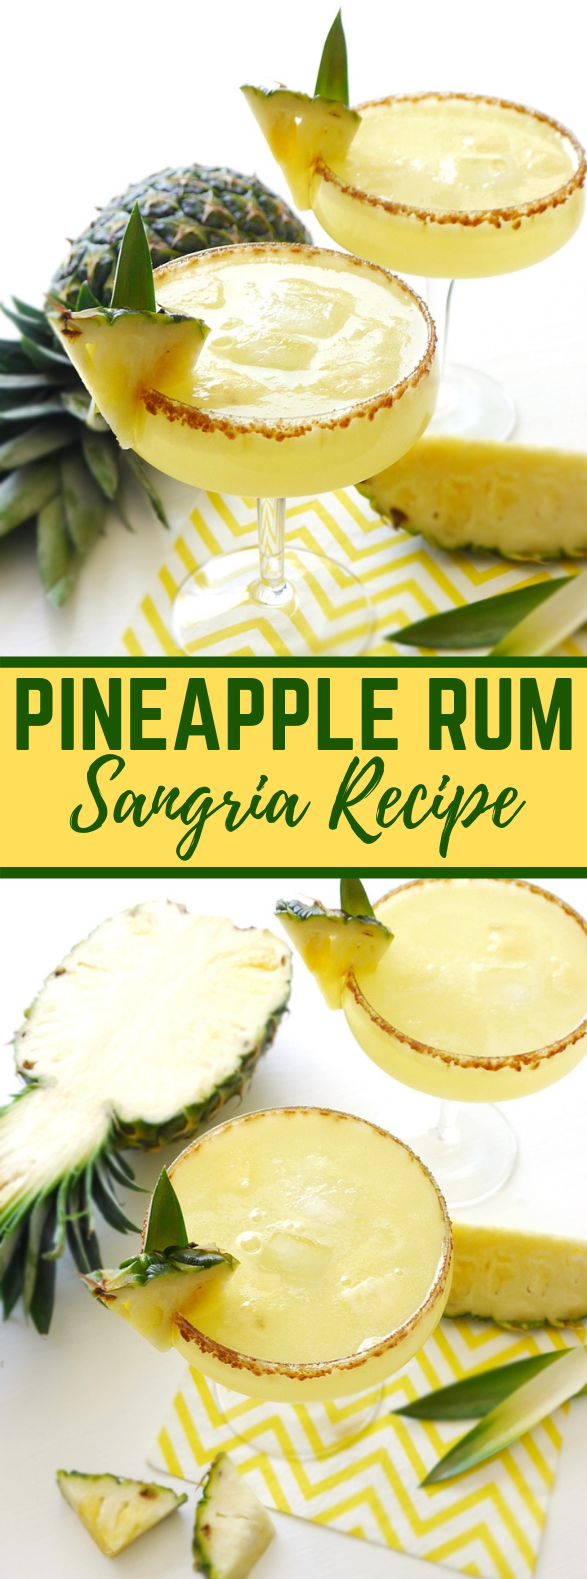 Pineapple Rum Sangria Recipe #drinks #summer